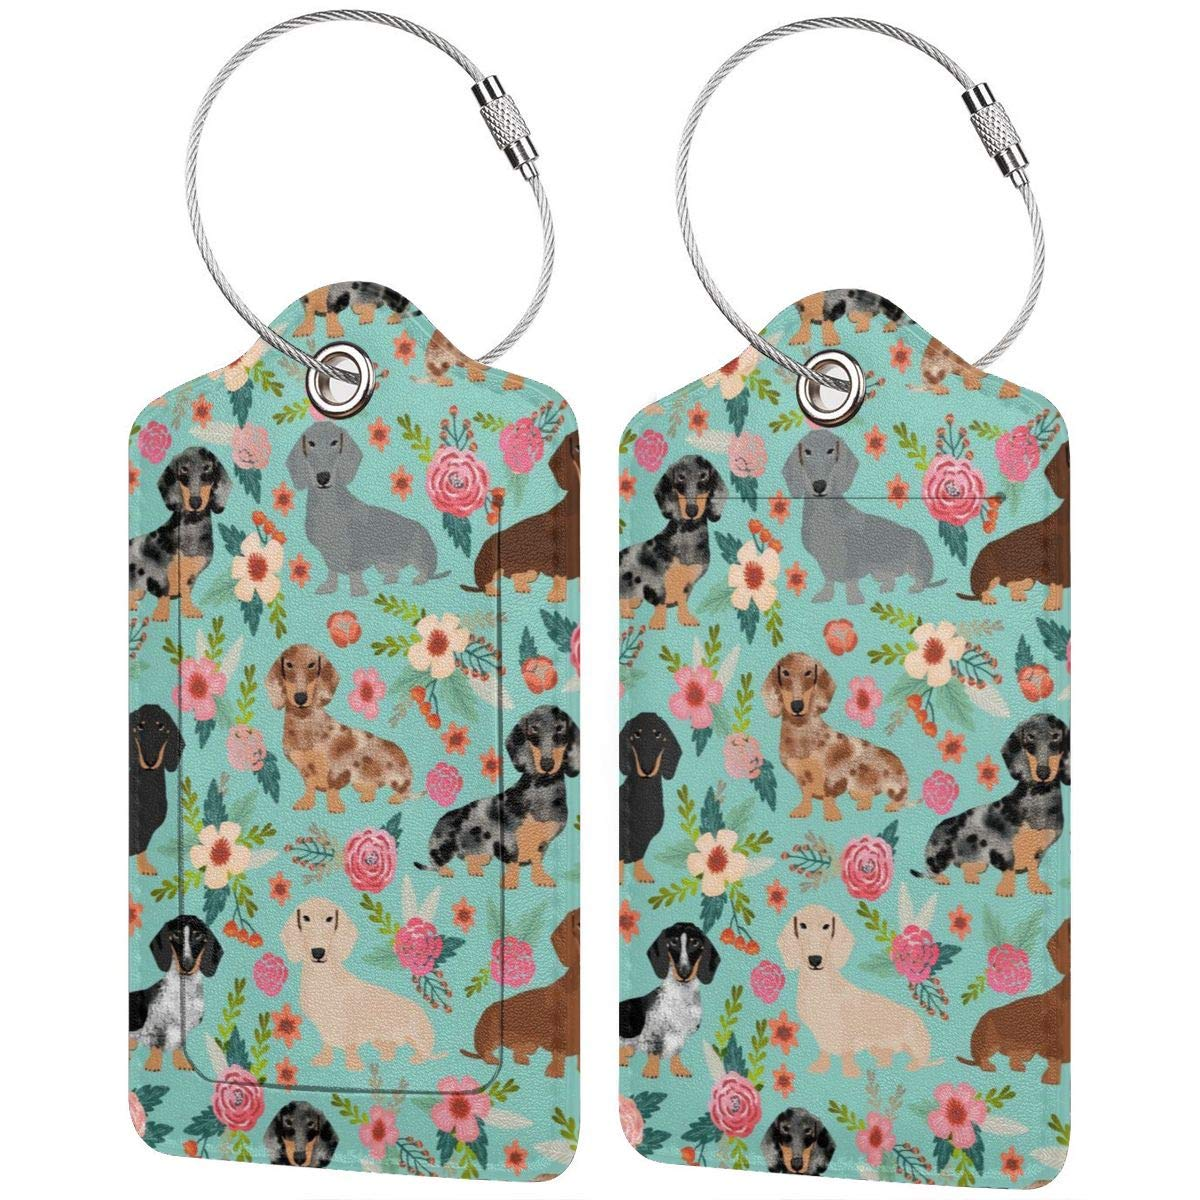 Godzigod Luggage Tags PU Leather Suitcase Card Tag with Stainless Steel Loop Travel Baggage Handbag Tag Labels Travel Accessories Dachshund Dog Vintage Mastiff Florals